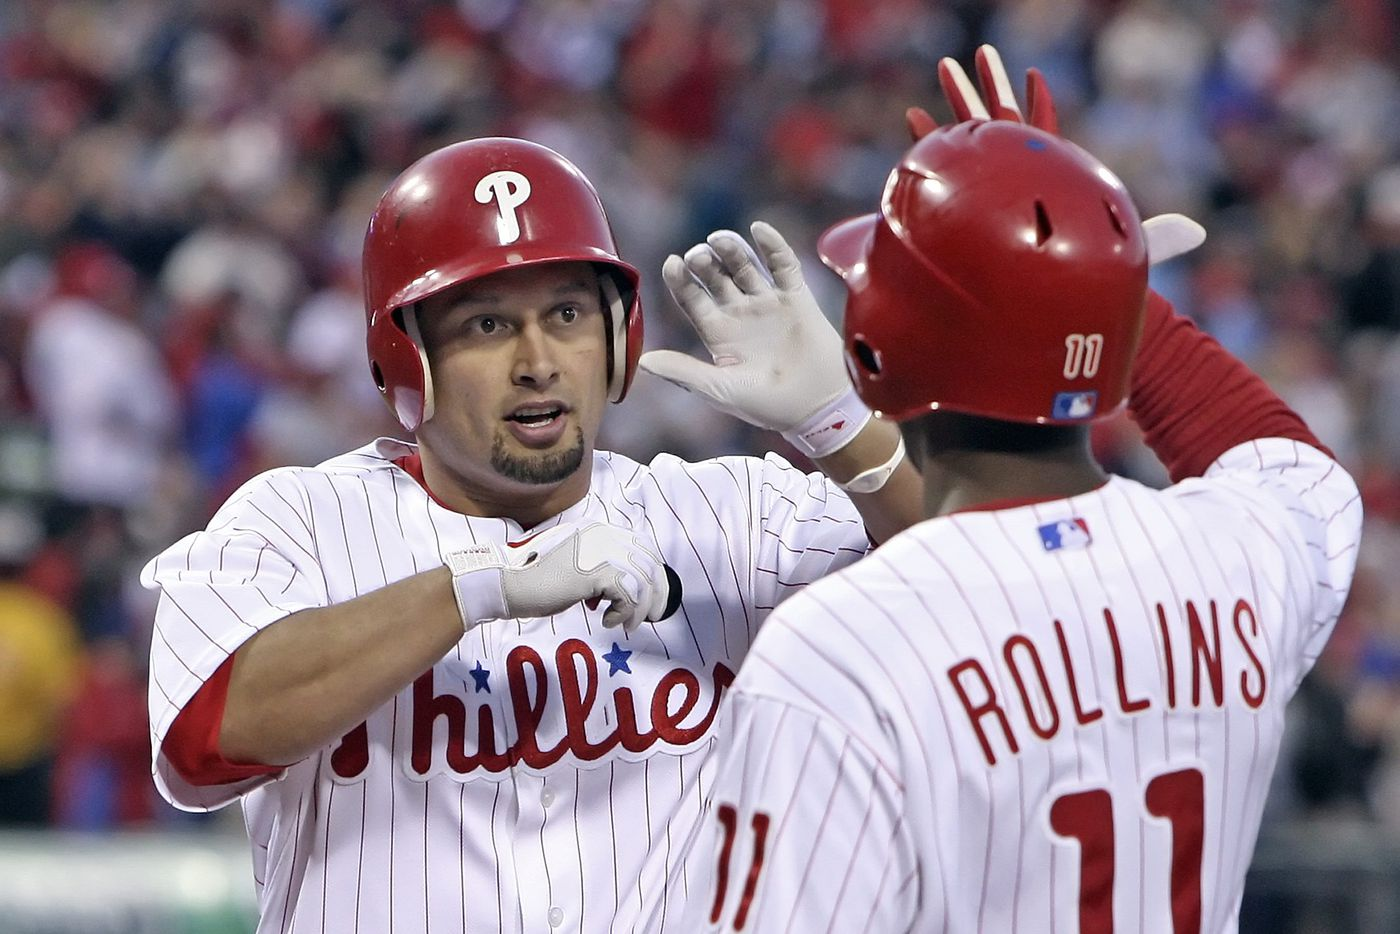 Shane Victorino to sign one-day contract, retire as a Phillie in August celebration